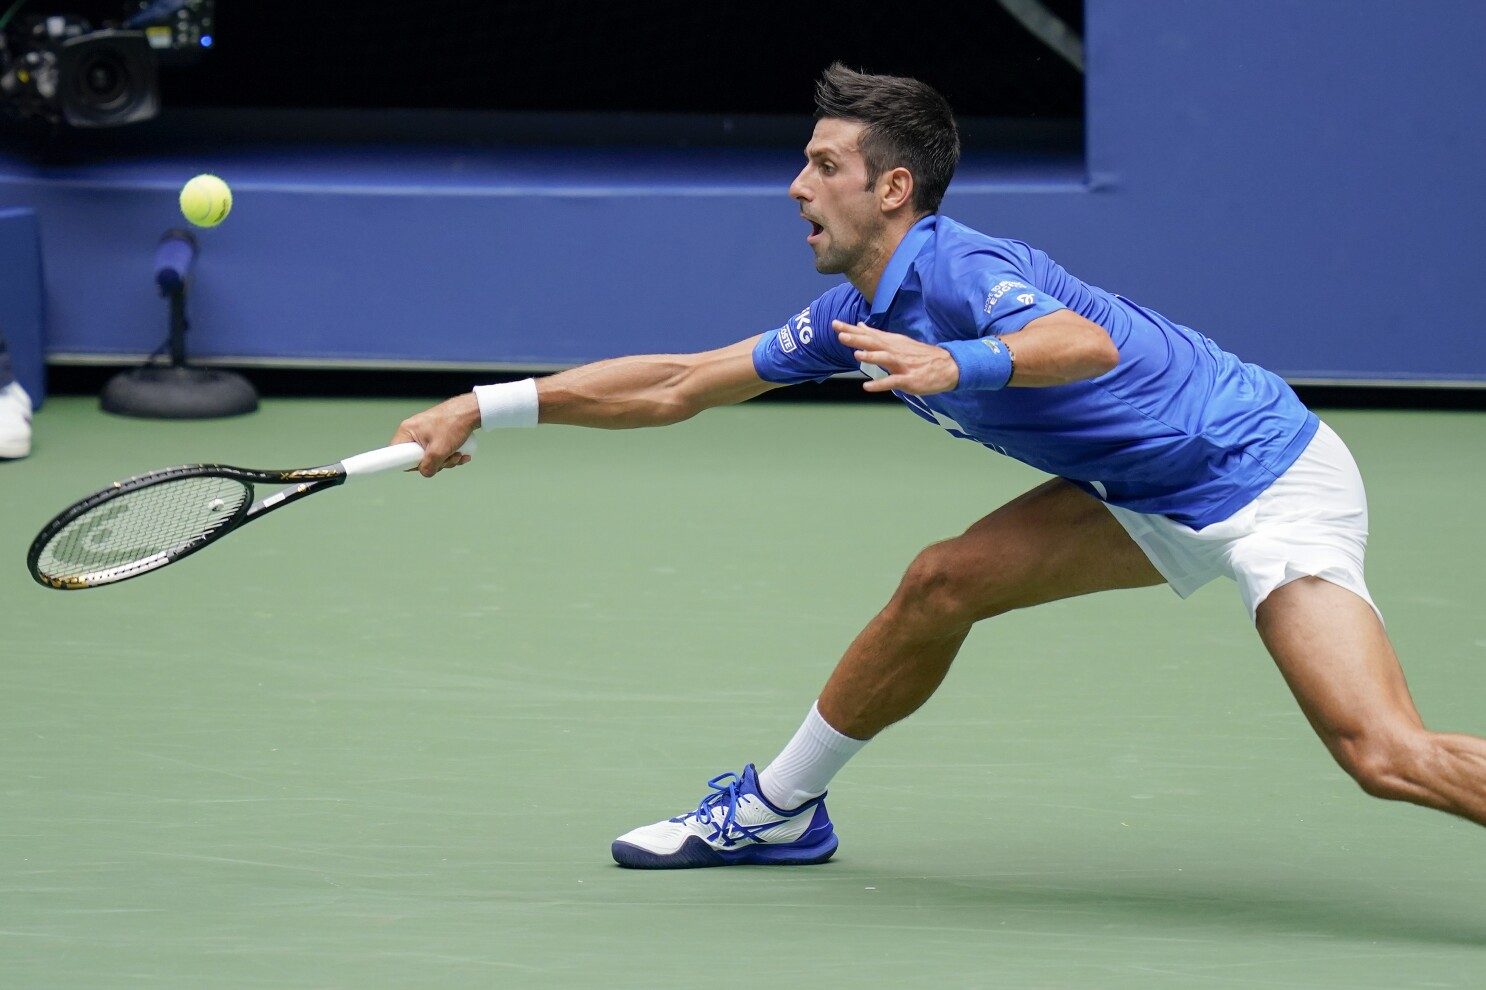 6 1 5 1 Collapse At Open Djokovic Opts For Home Over Hotel The San Diego Union Tribune